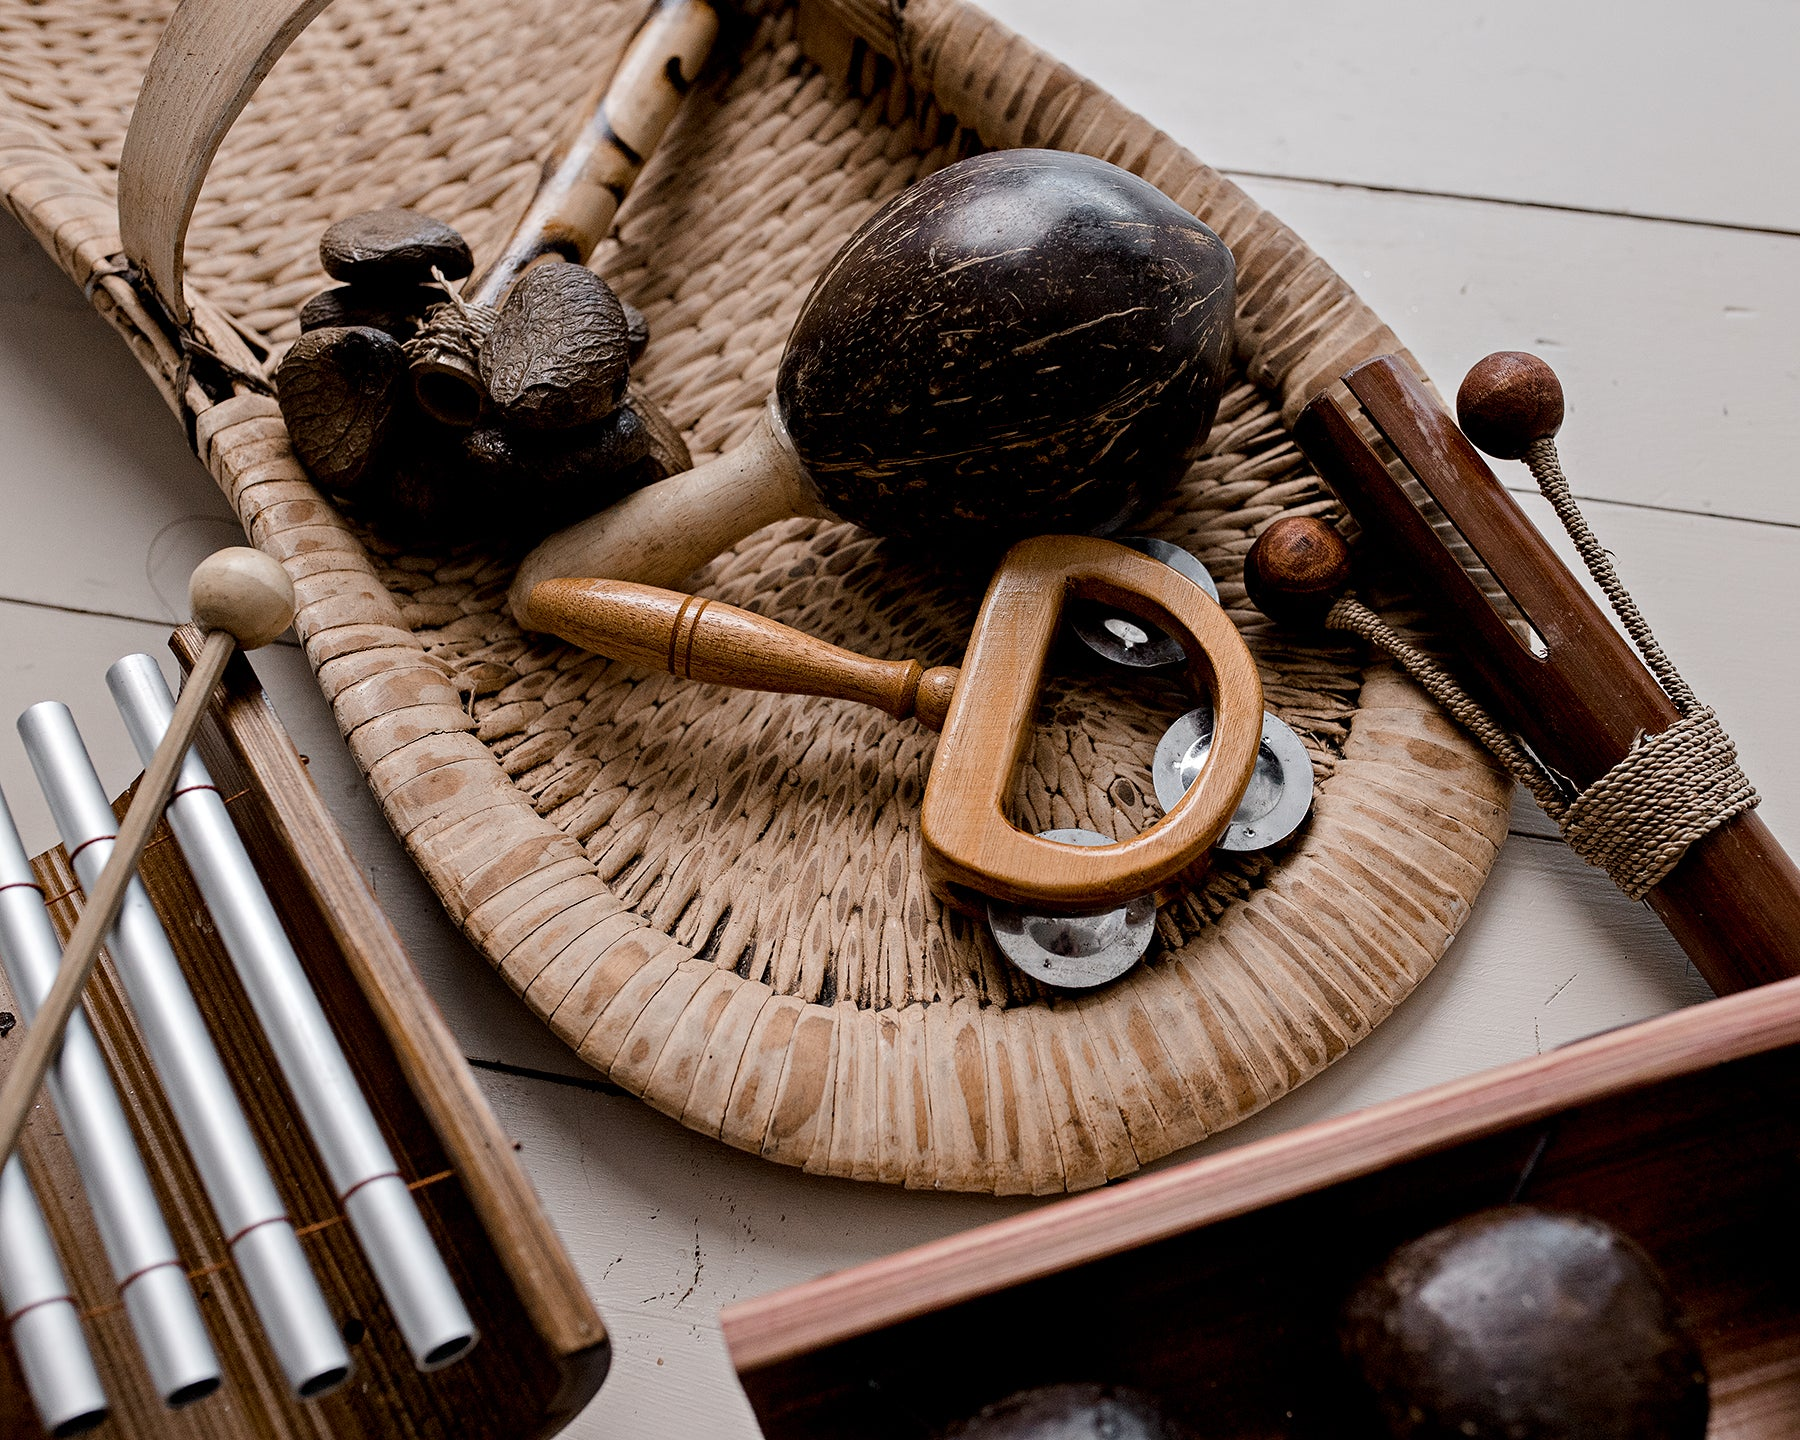 Papoose wooden musical instruments including wooden kenari, tambourine and coconut maraca